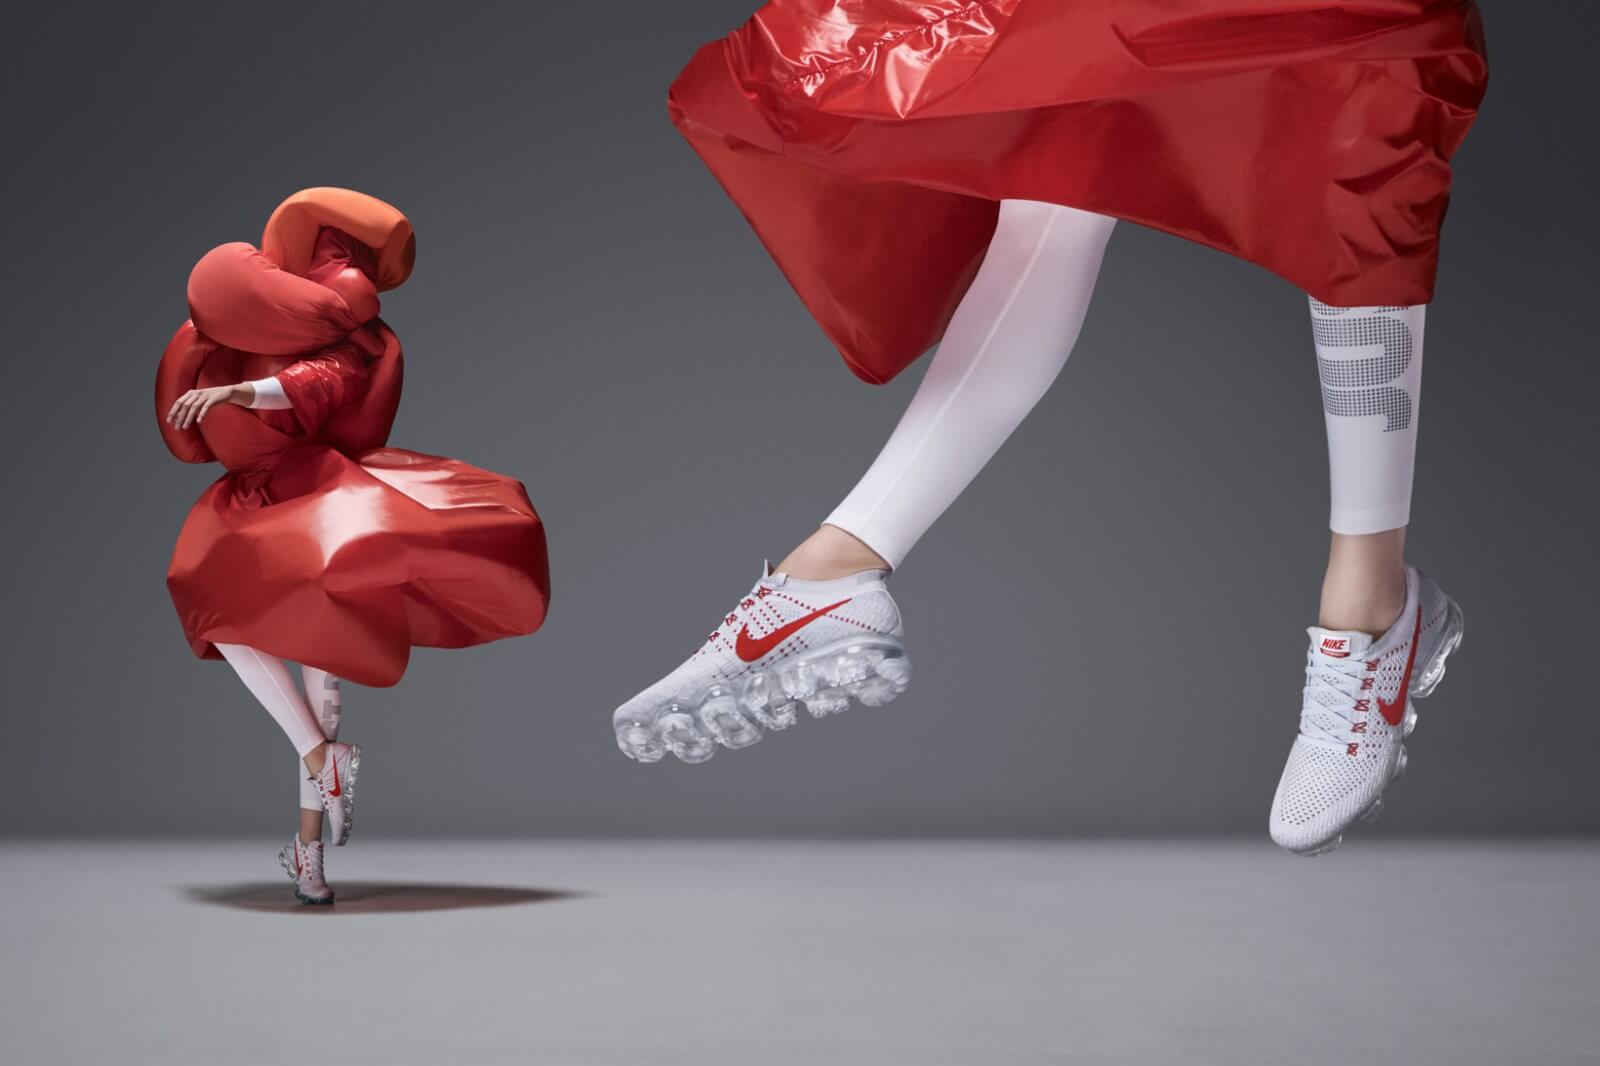 Nike Experiments In Style & Walks on Air